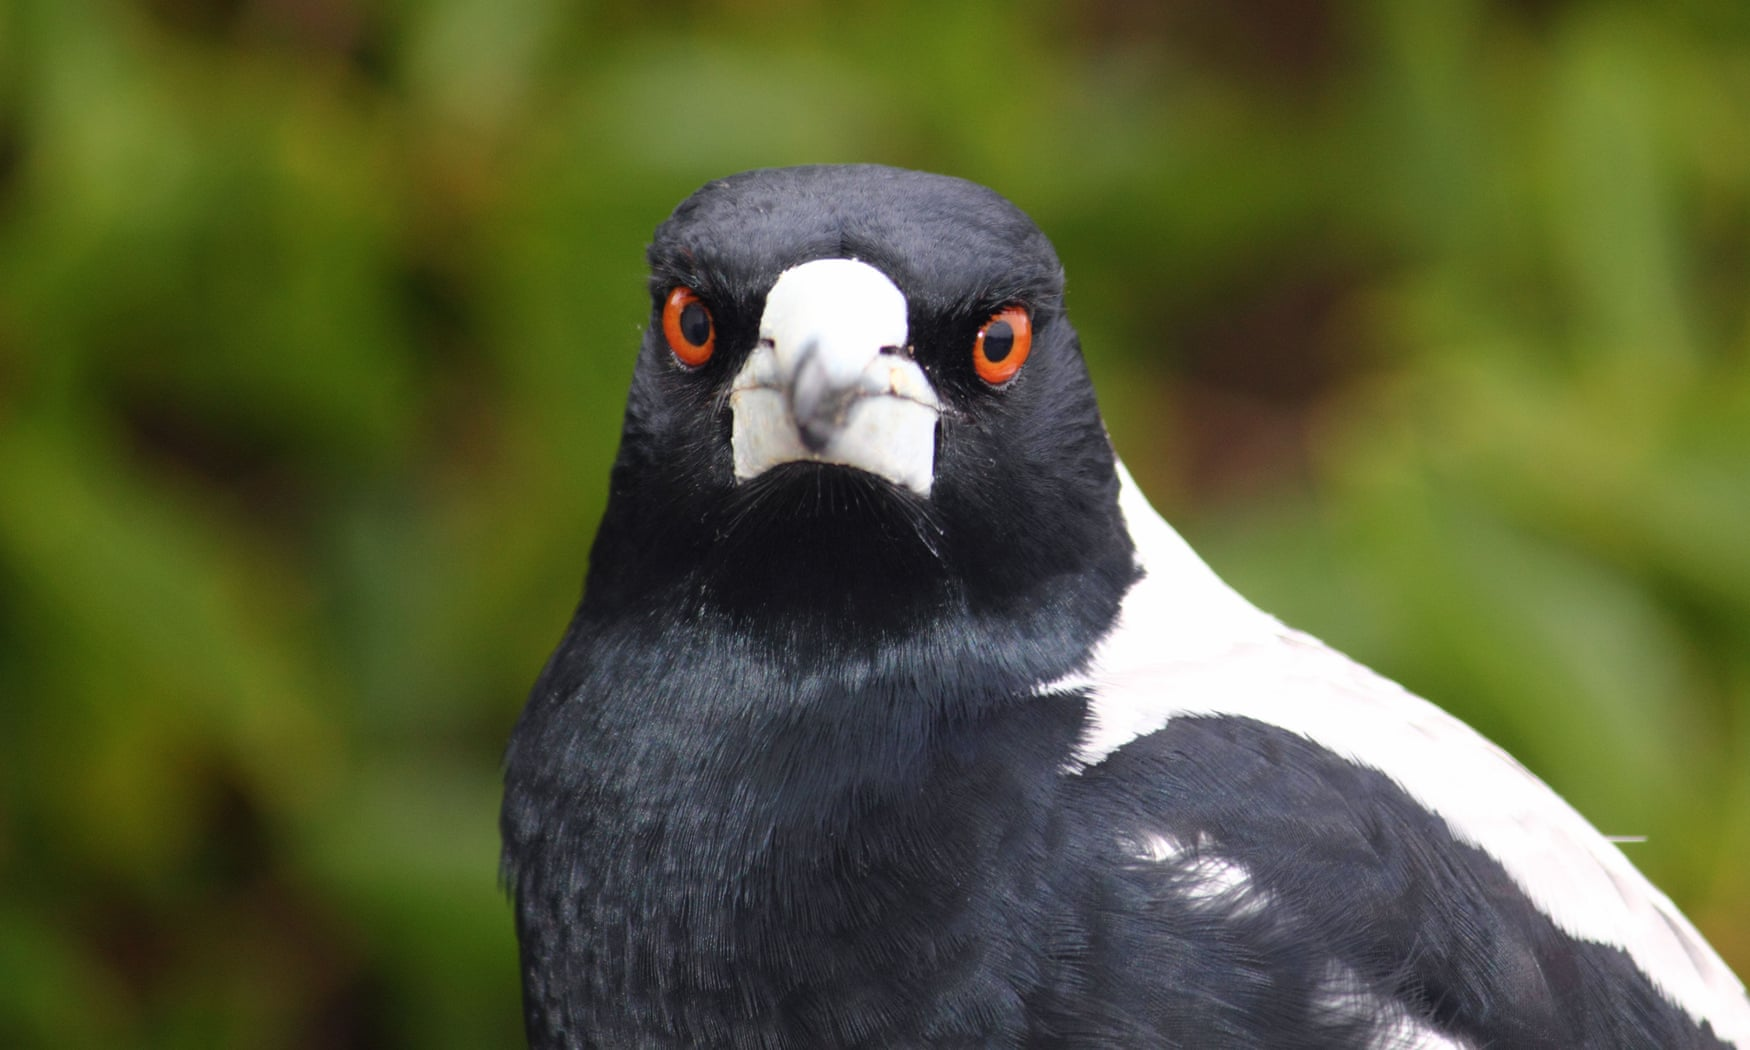 POLL: Should Australian magpie attacks be deterred by killing or relocating them?